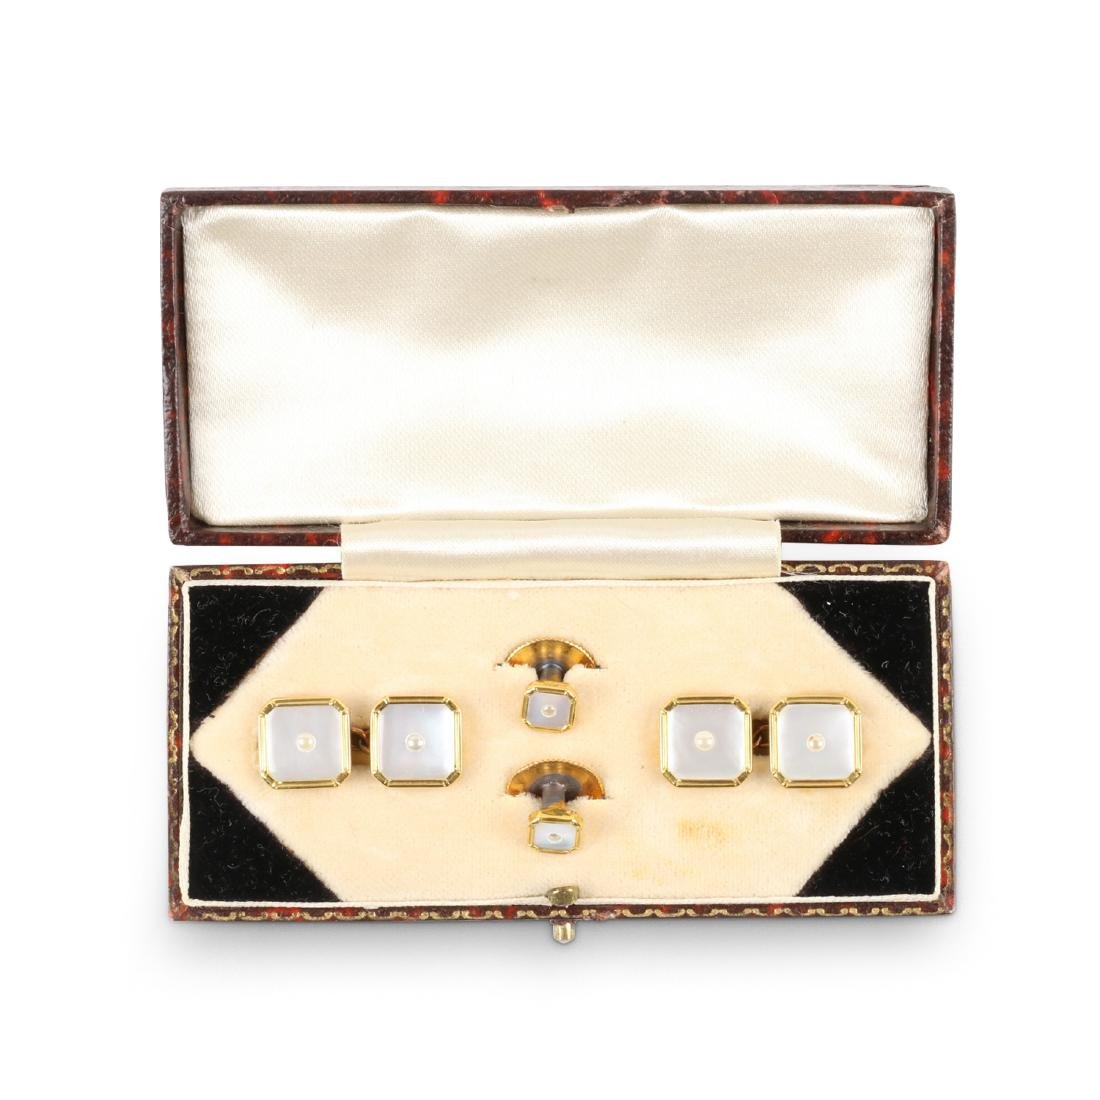 A British 9K Gold & Mother-of-Pearl Cufflinks Set